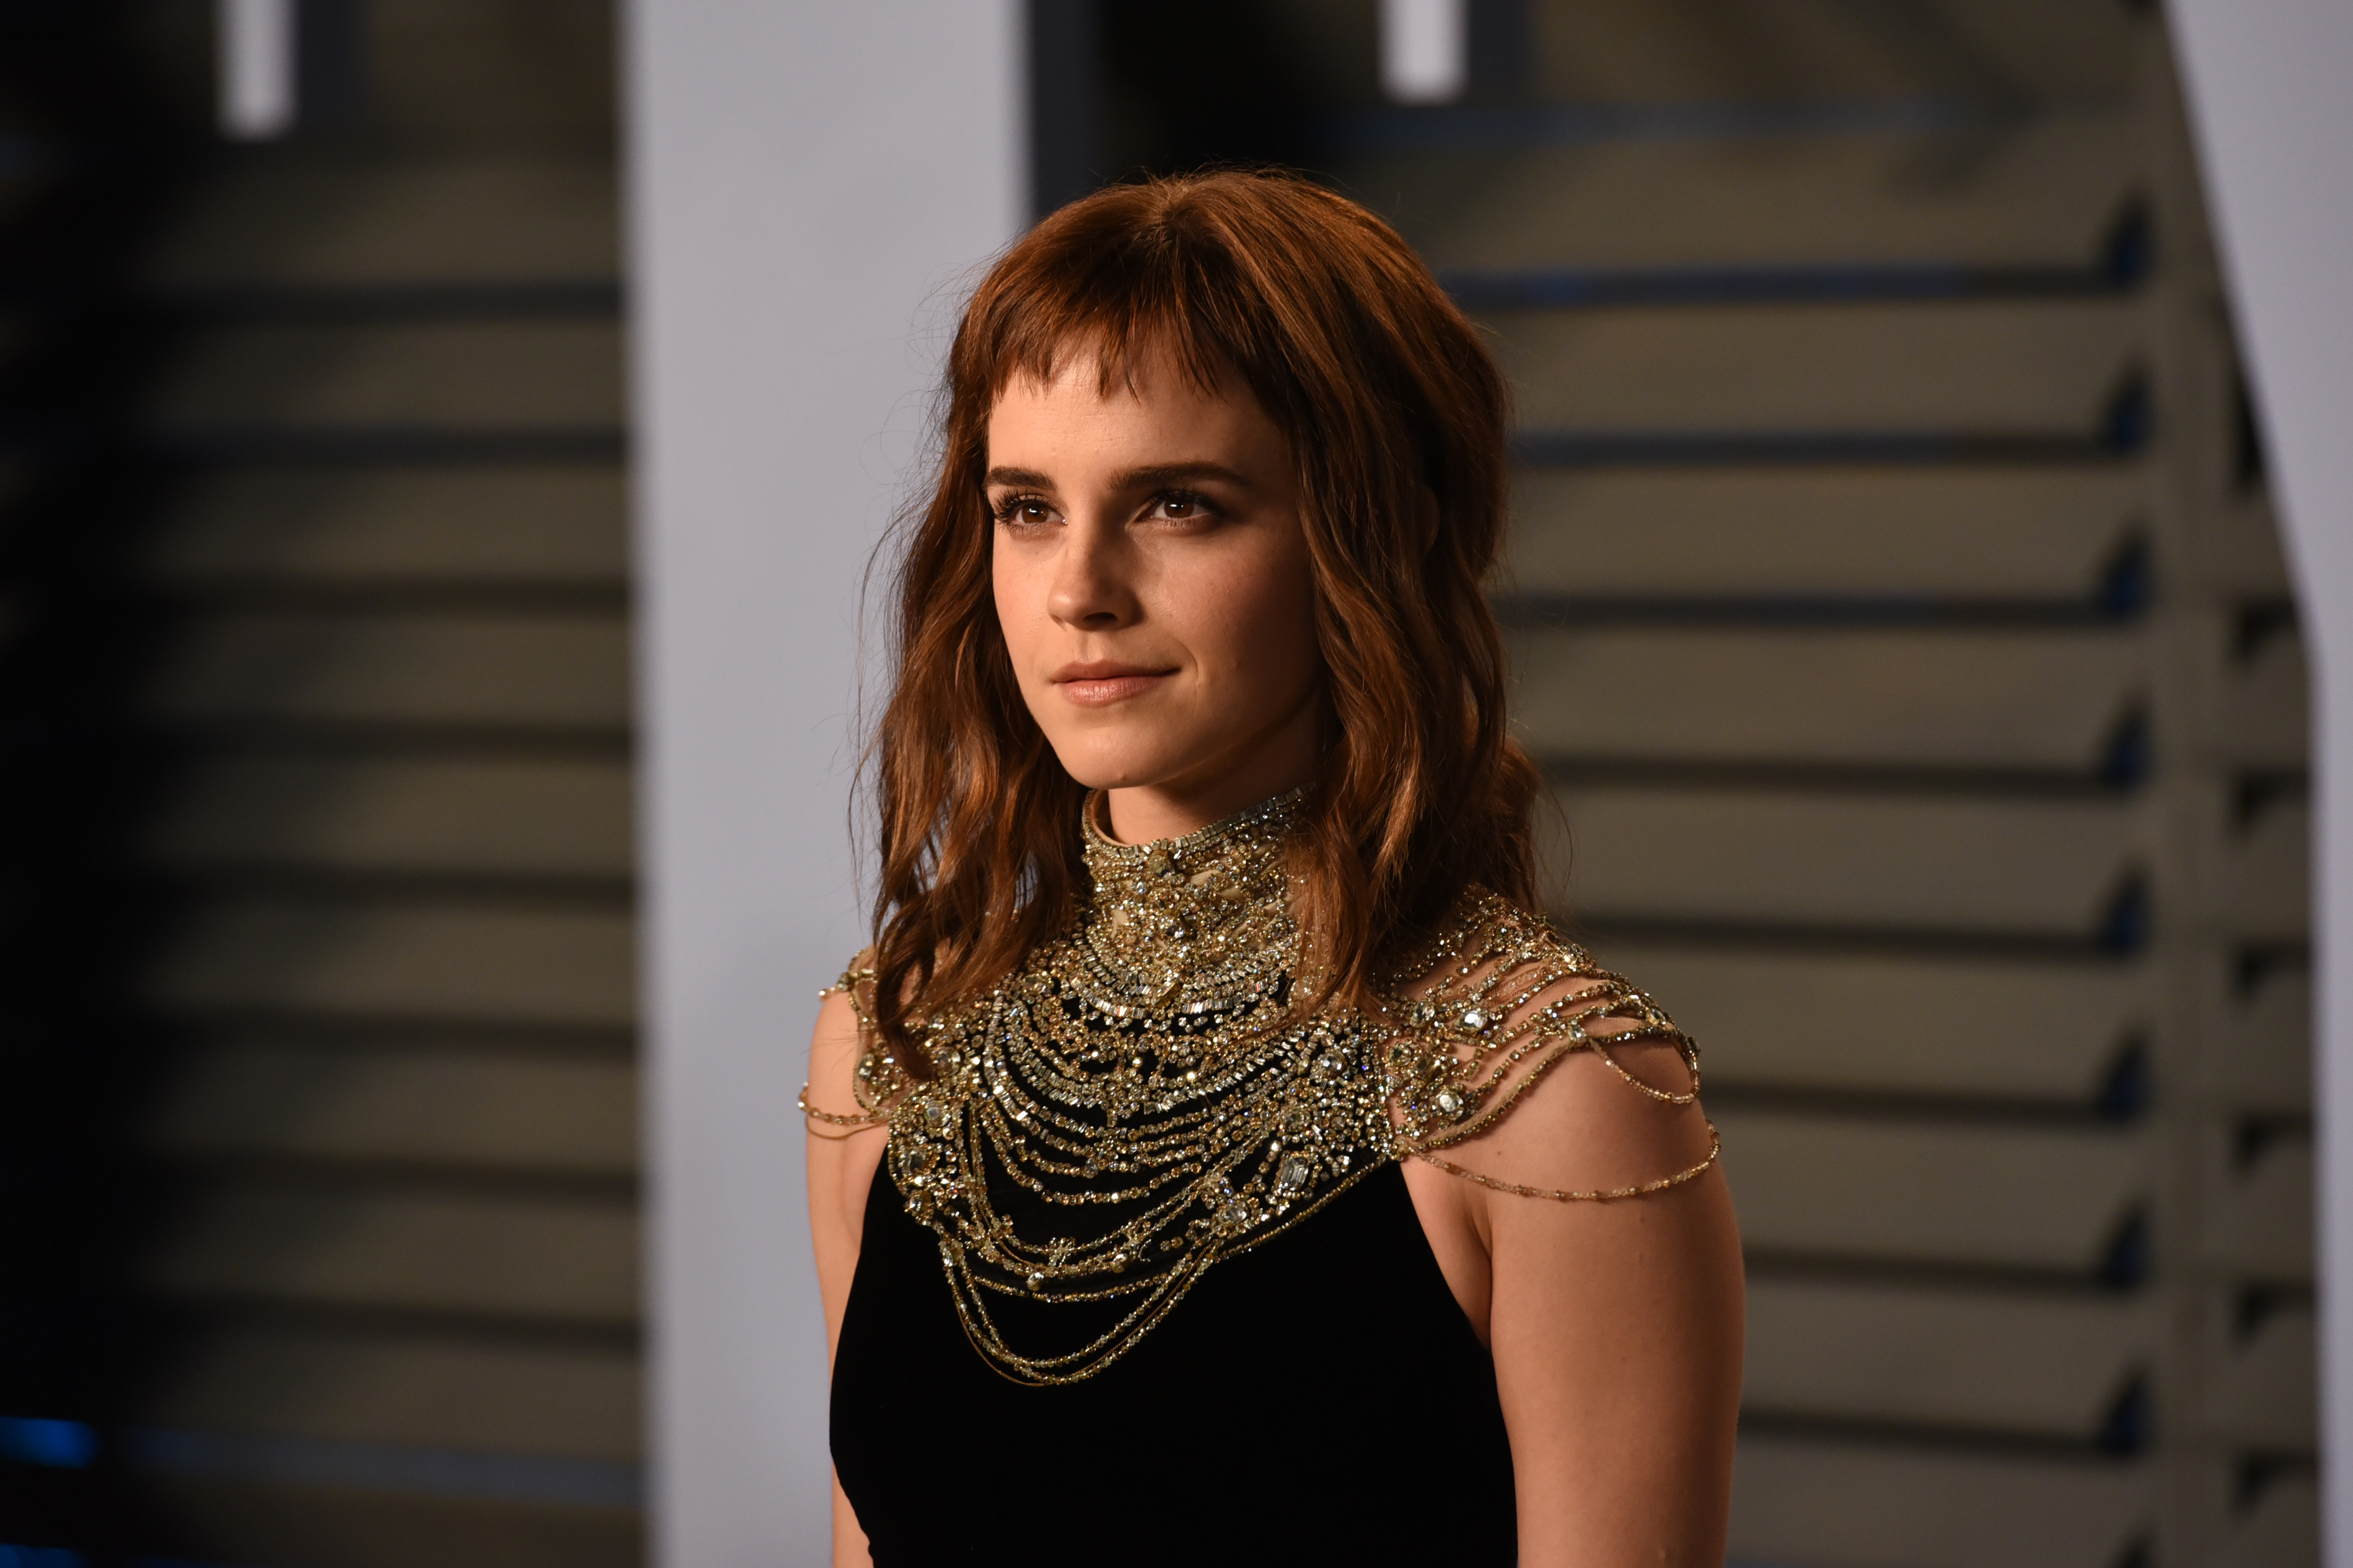 Here's why everyone's talking about Emma Watson and Tom Felton